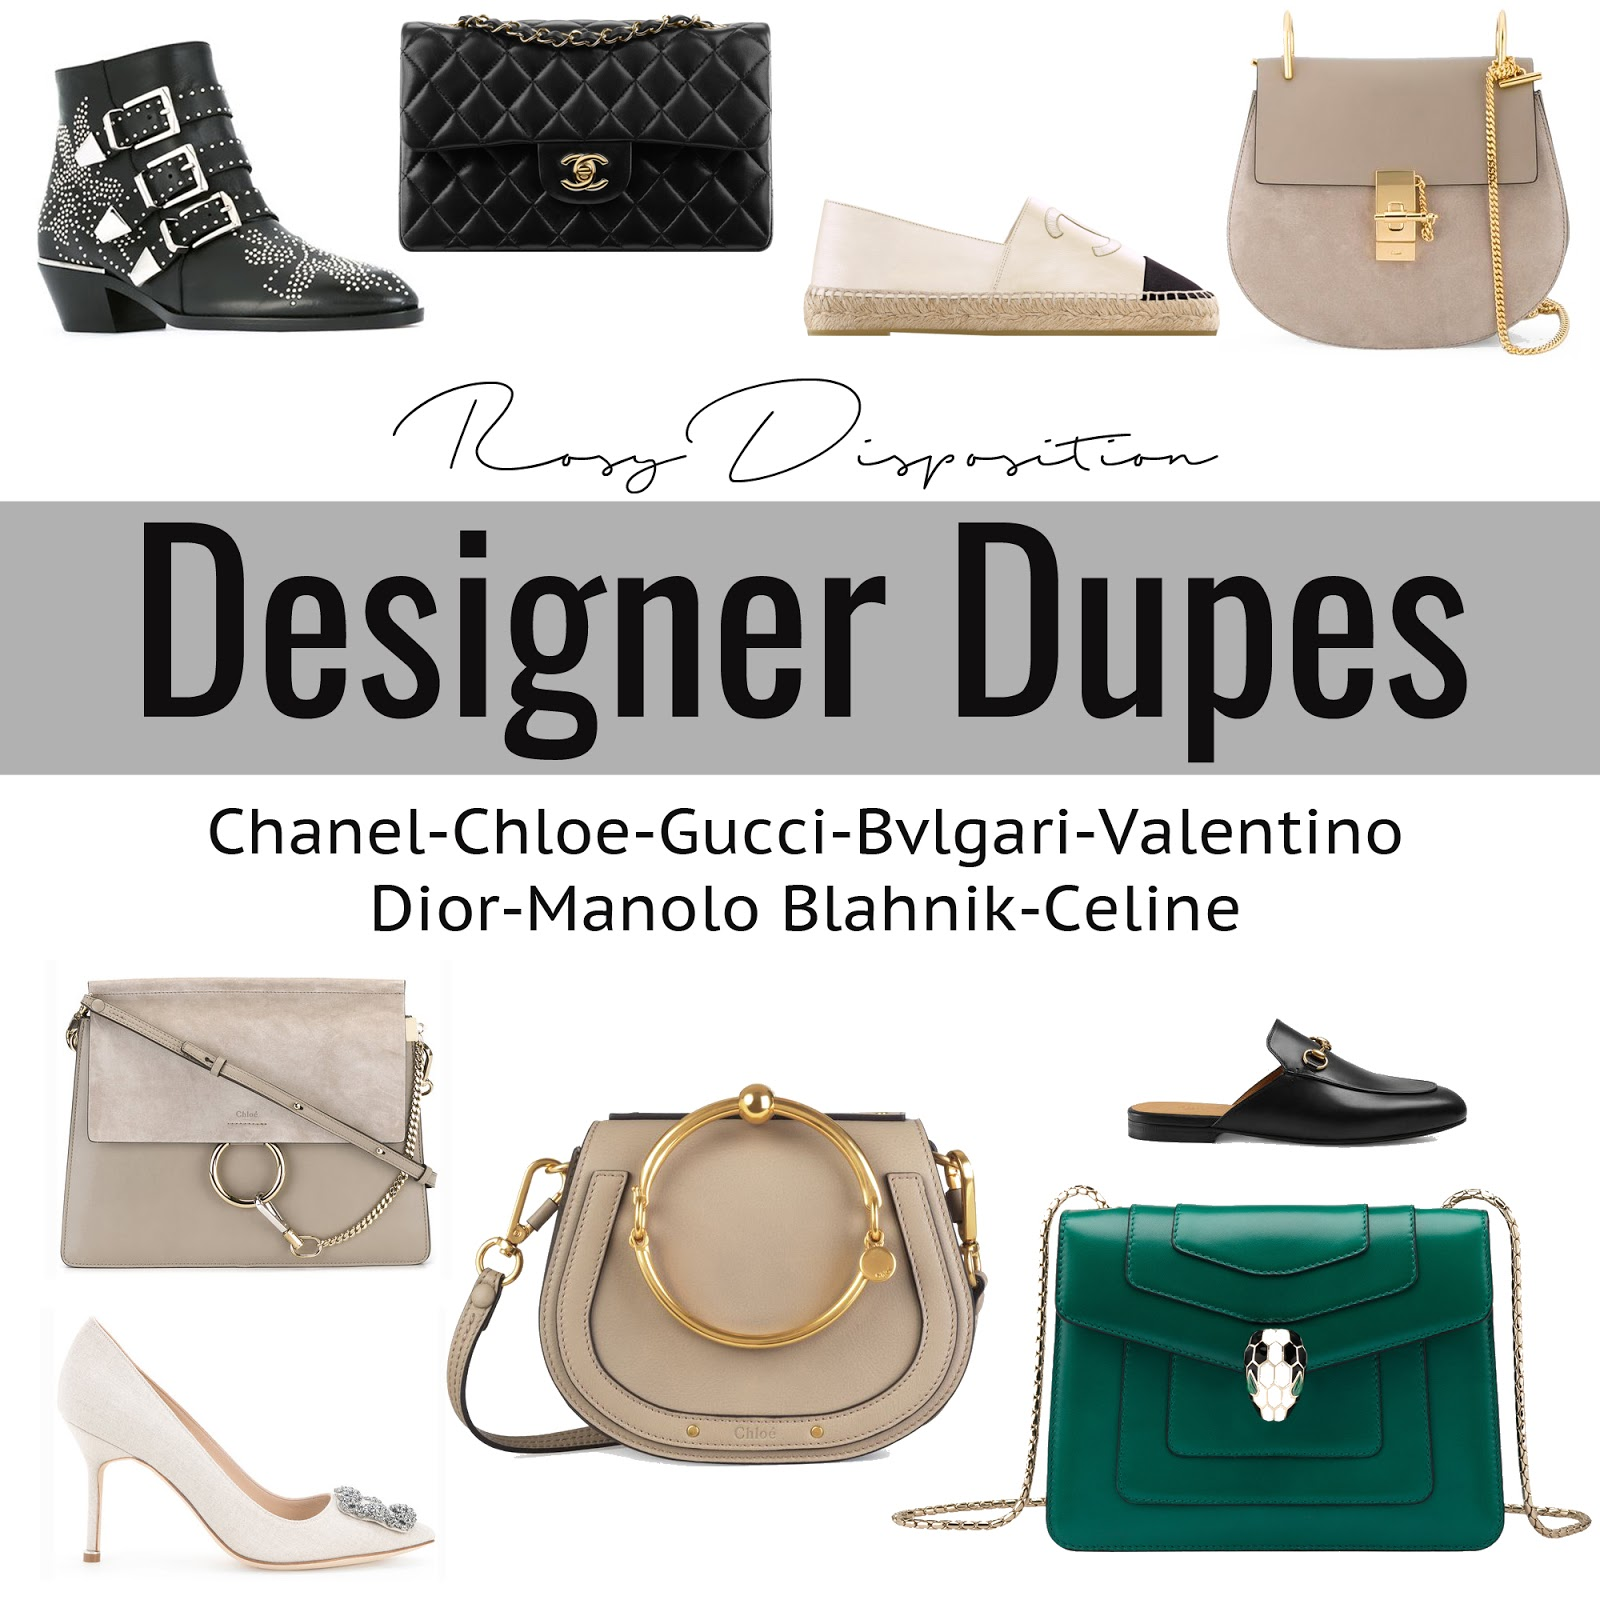 4d02fffb3 A lot of you seemed to like my designer dupes post last week and I ve since found  a ton more that I want to share before the dupes sell out. We all ...